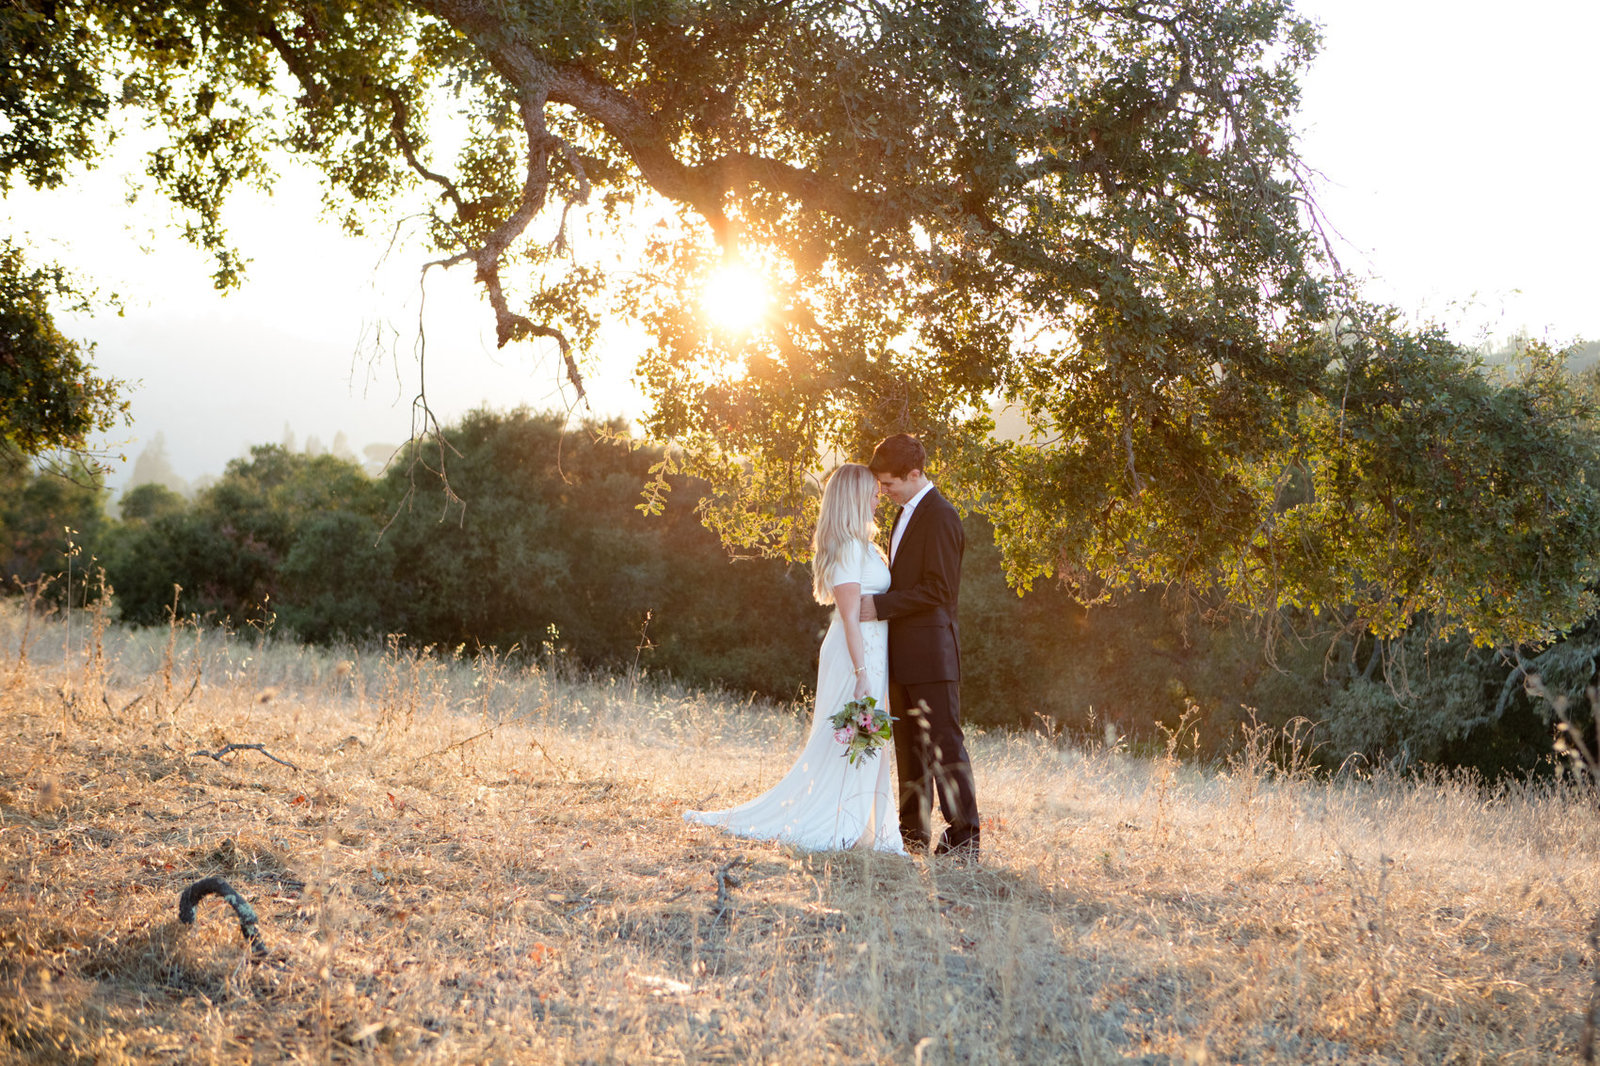 Sun drenched wedding photos in beautiful Los Altos Hills